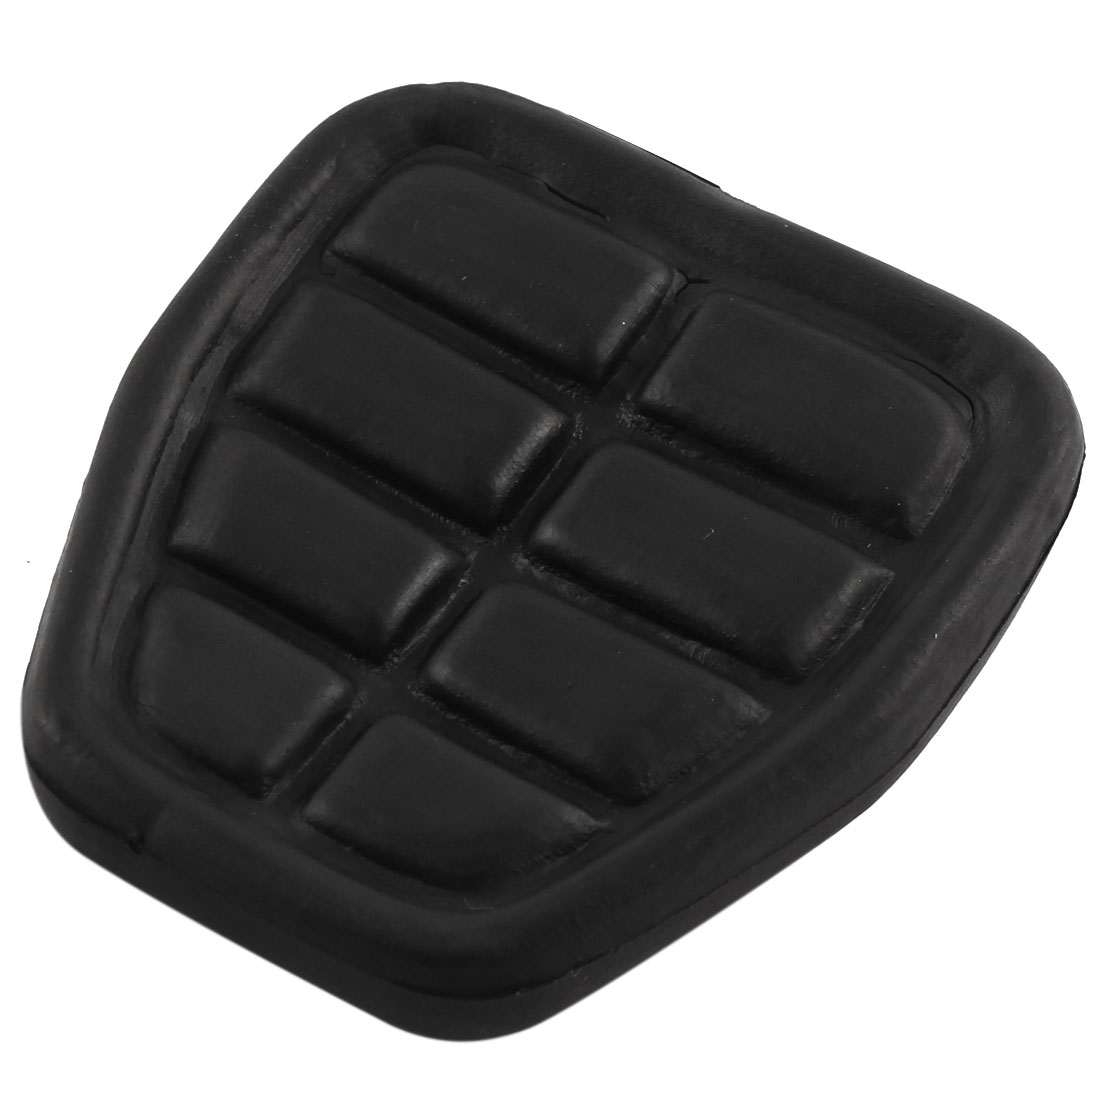 Clutch Brake Pedal Pad Black Rubber Set 321721173 for Audi 80